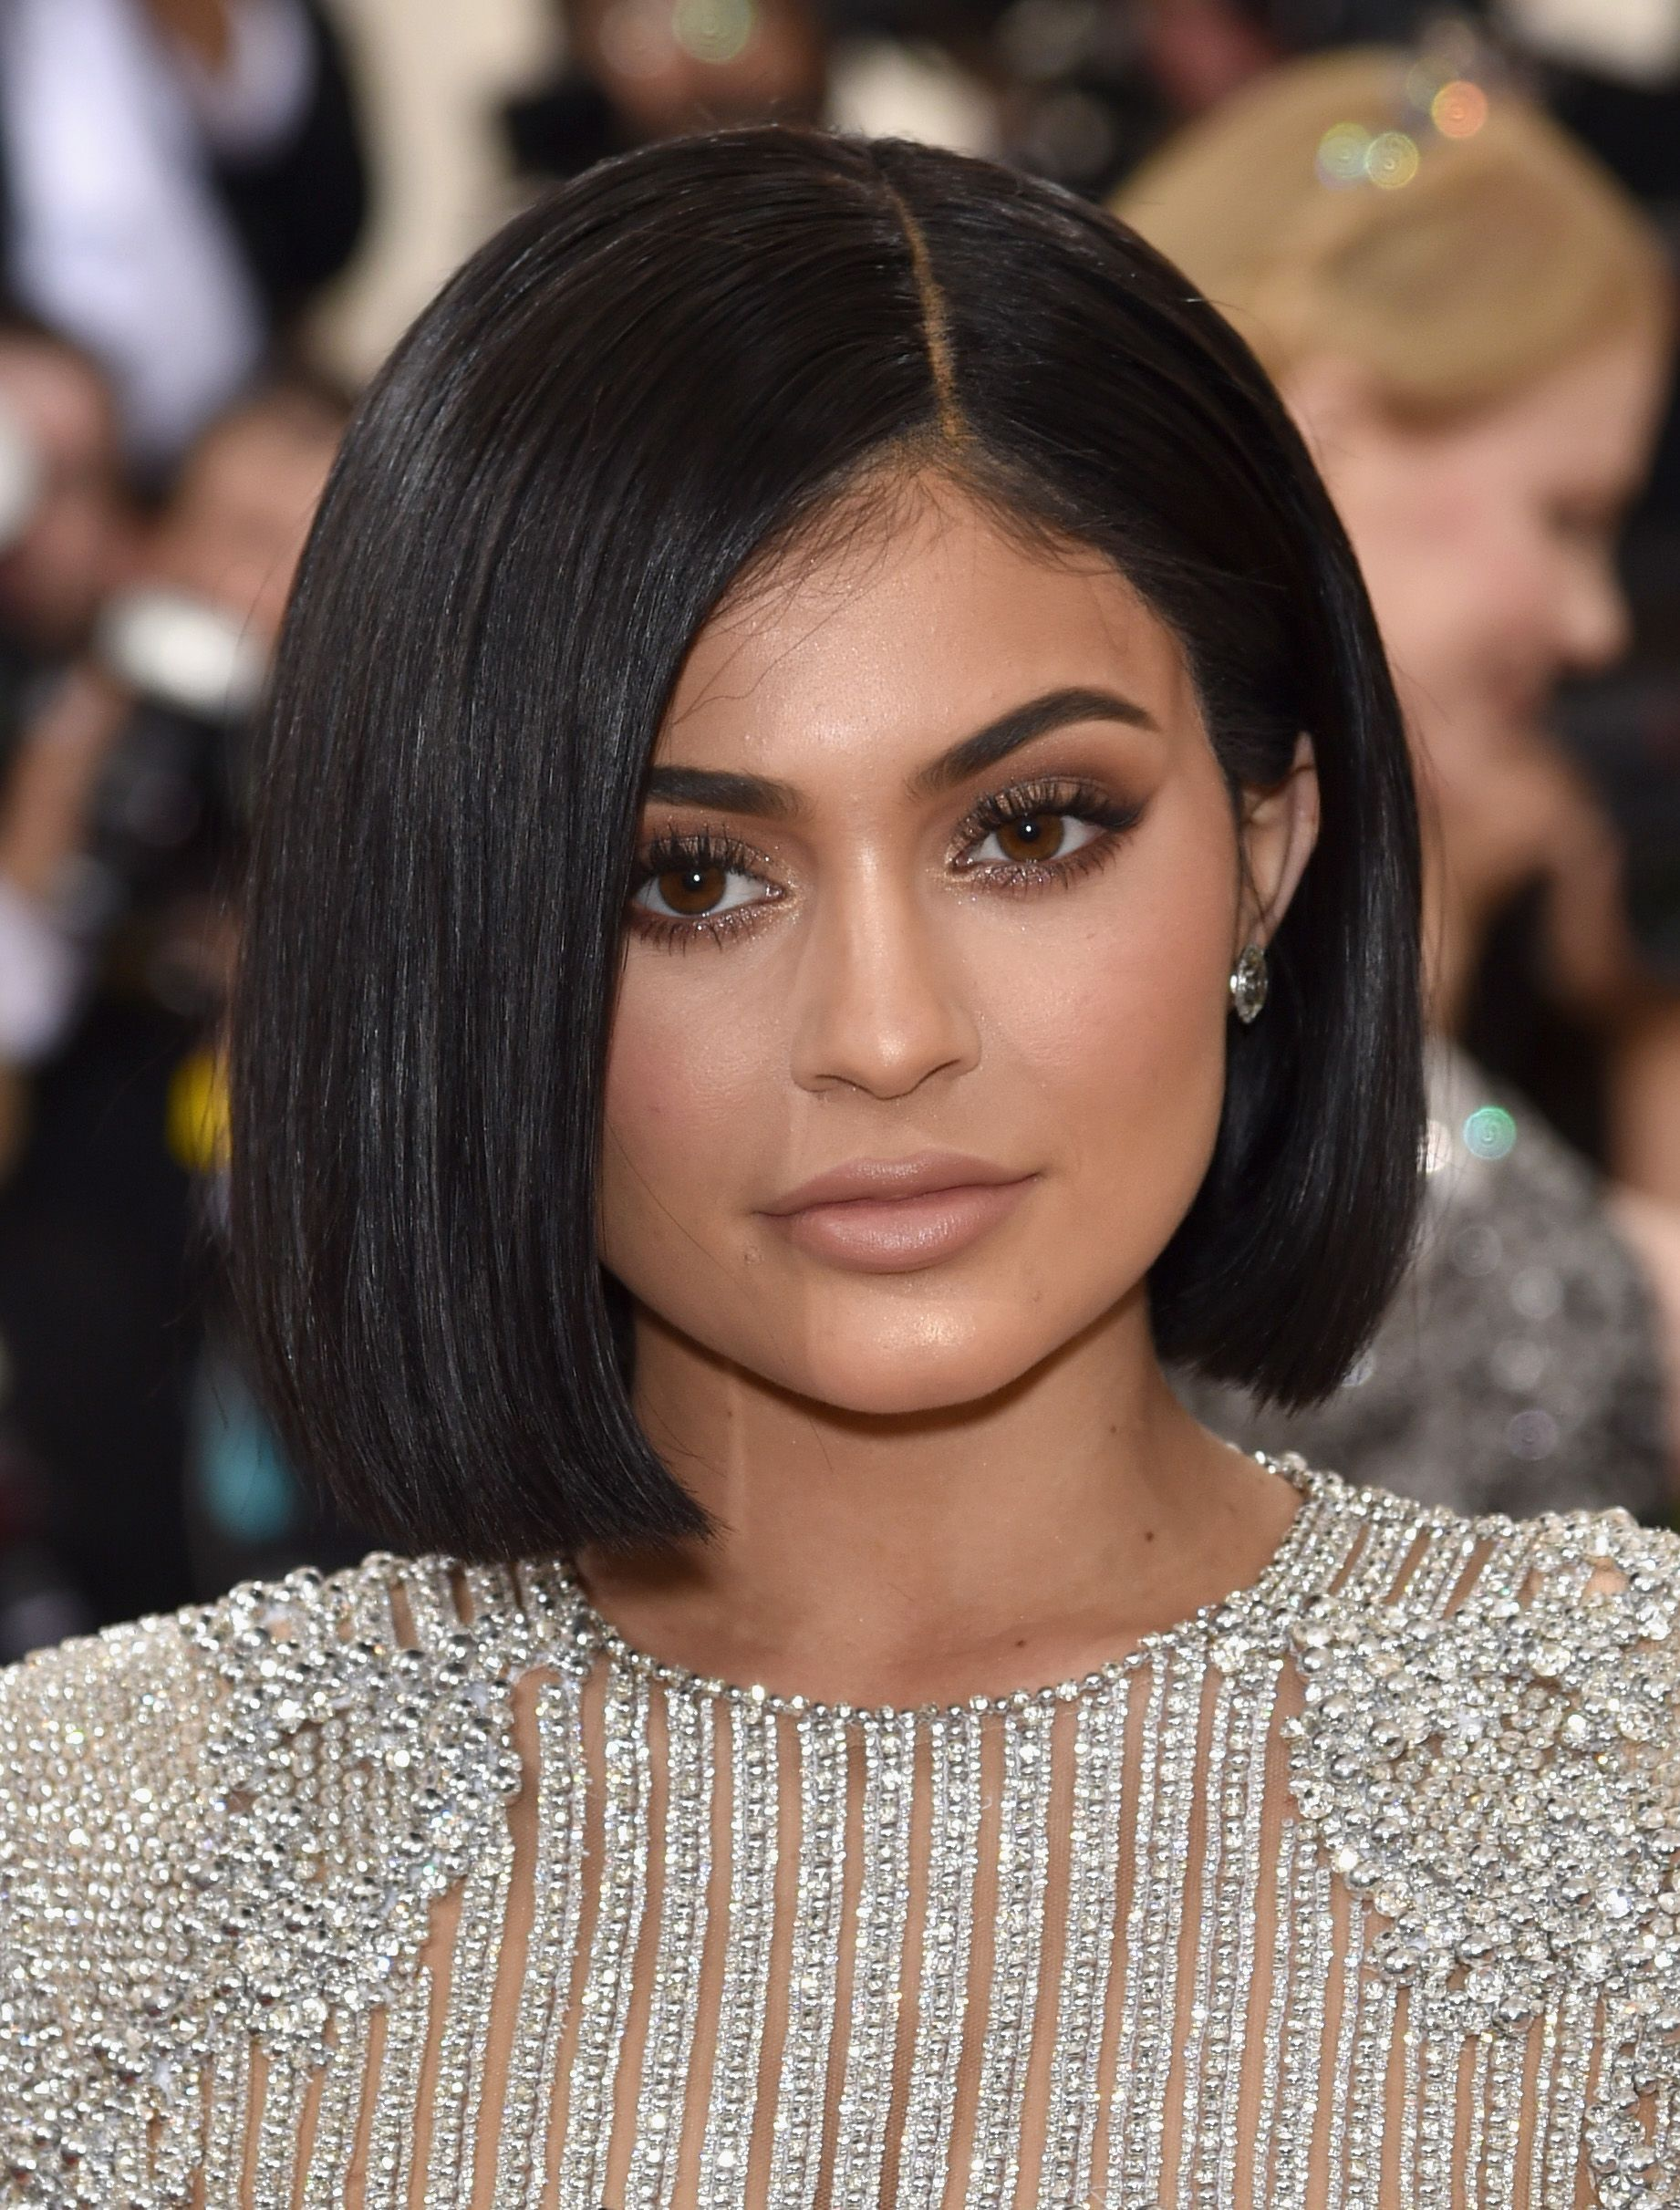 """Kylie Jenner at the """"Manus x Machina: Fashion in an Age of Technology"""" Costume Institute Gala Art on May 2, 2016 in N.Y. 